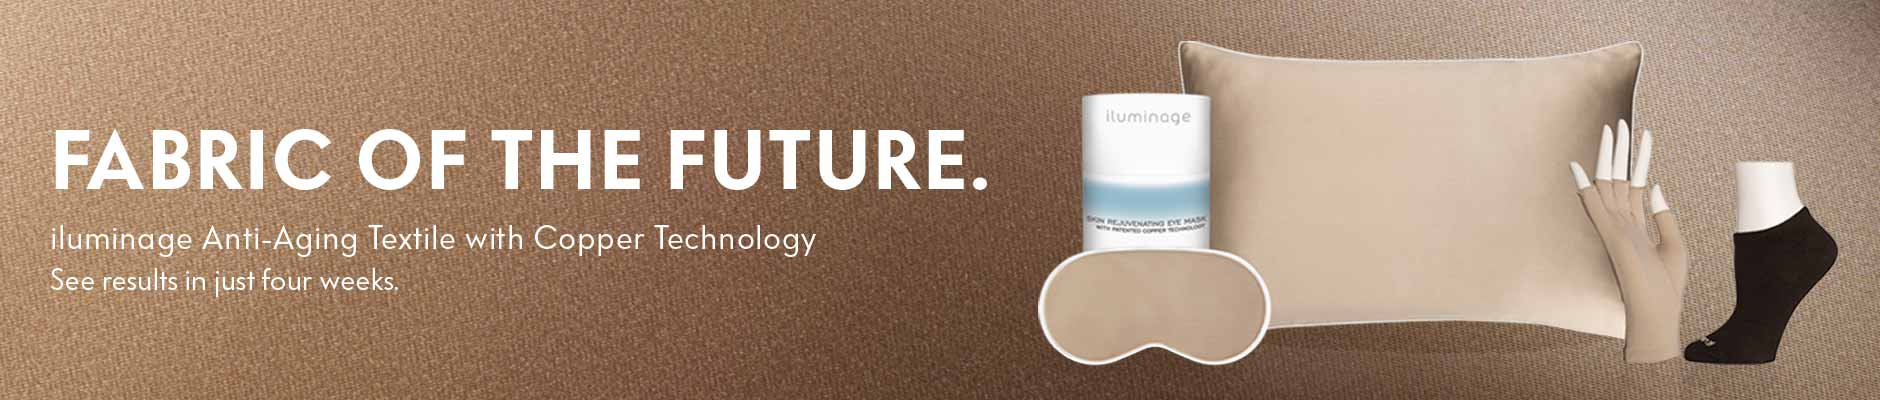 Fabric of the Future. iluminage Anti-Aging Textile with Copper Technology - See results in just four weeks.